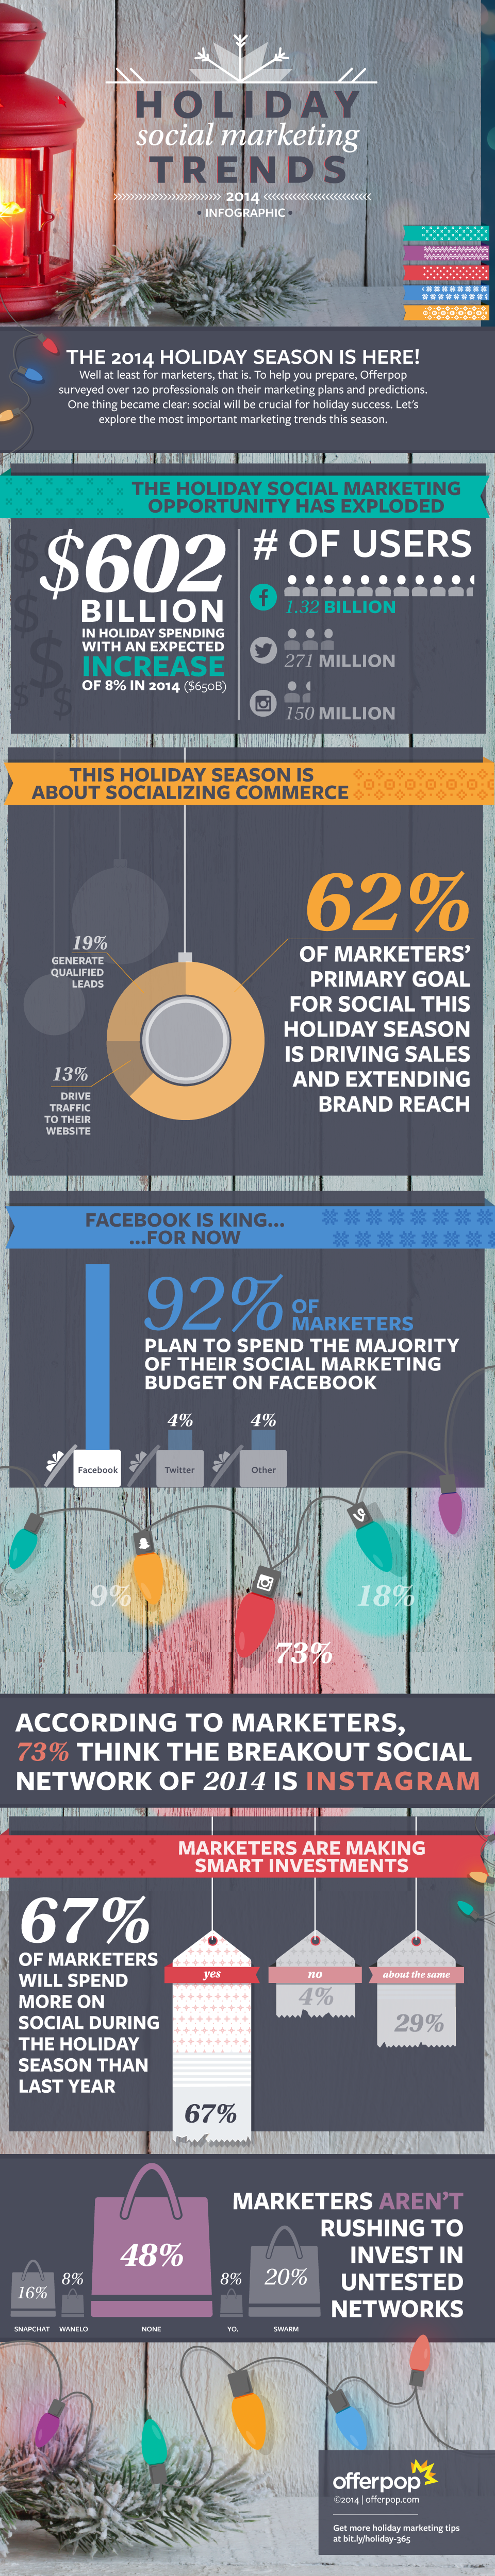 holiday-marketing-trends-infographic.png